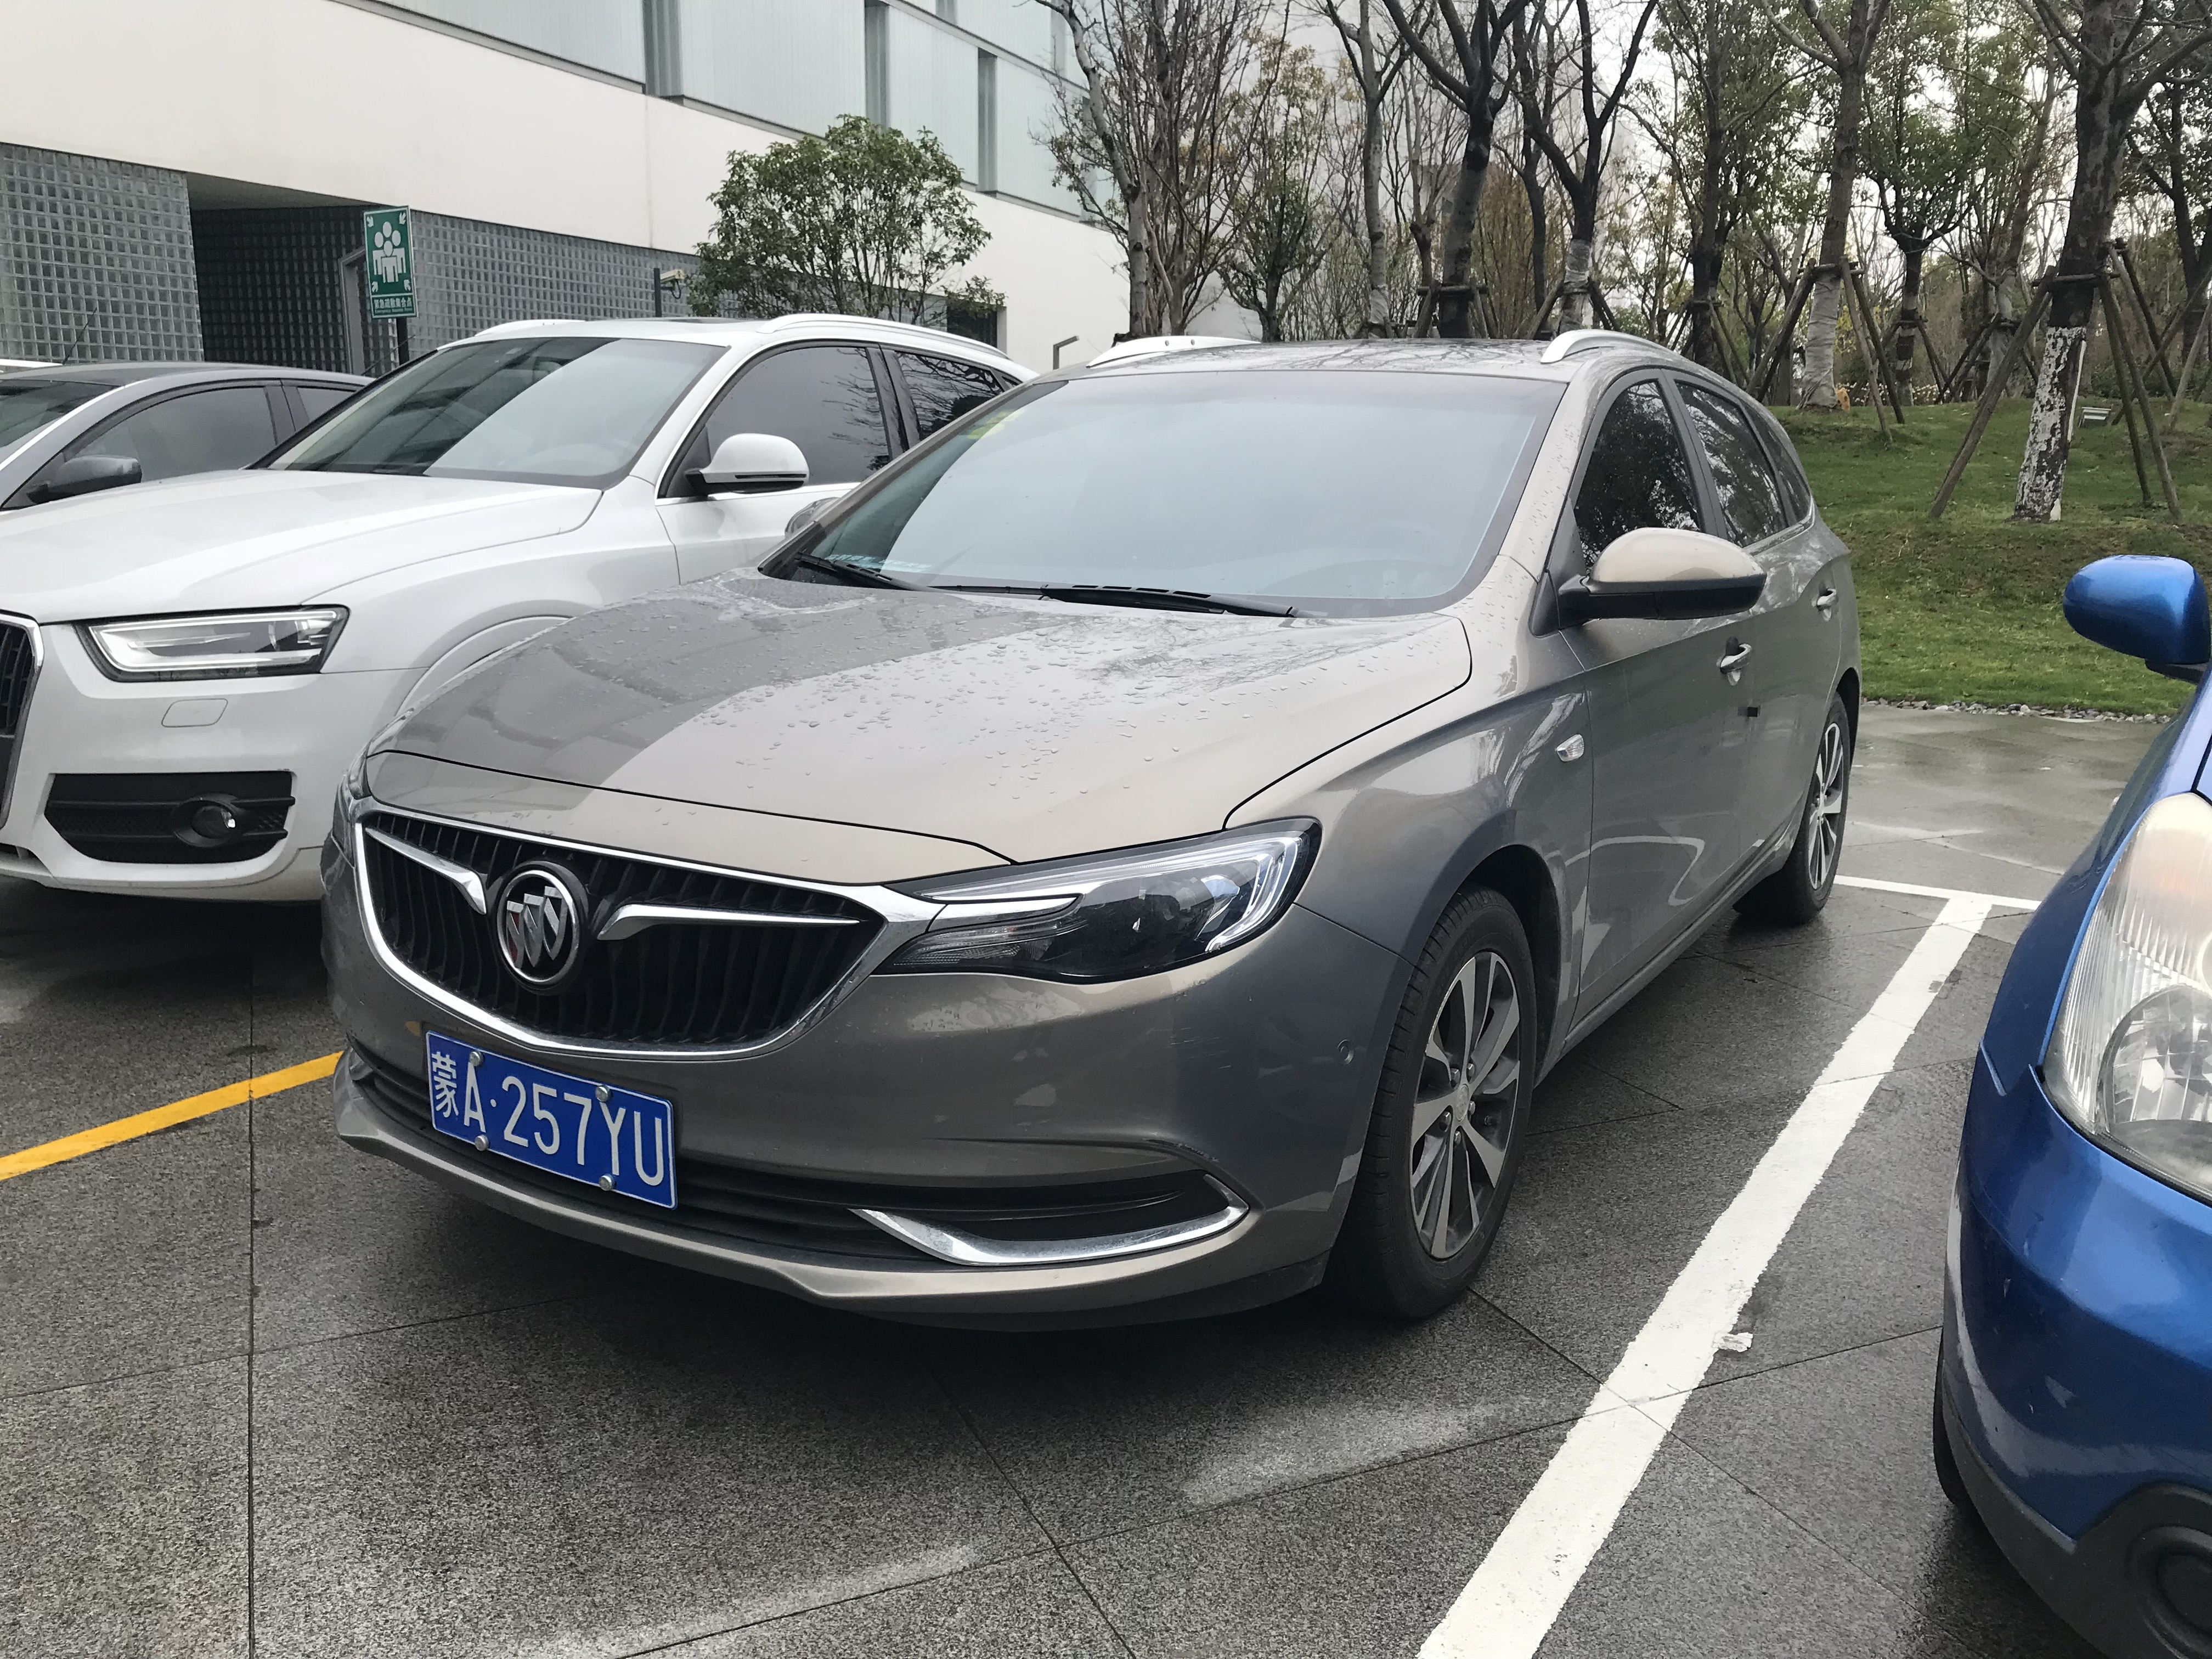 datei:buick excelle gx 01 – wikipedia